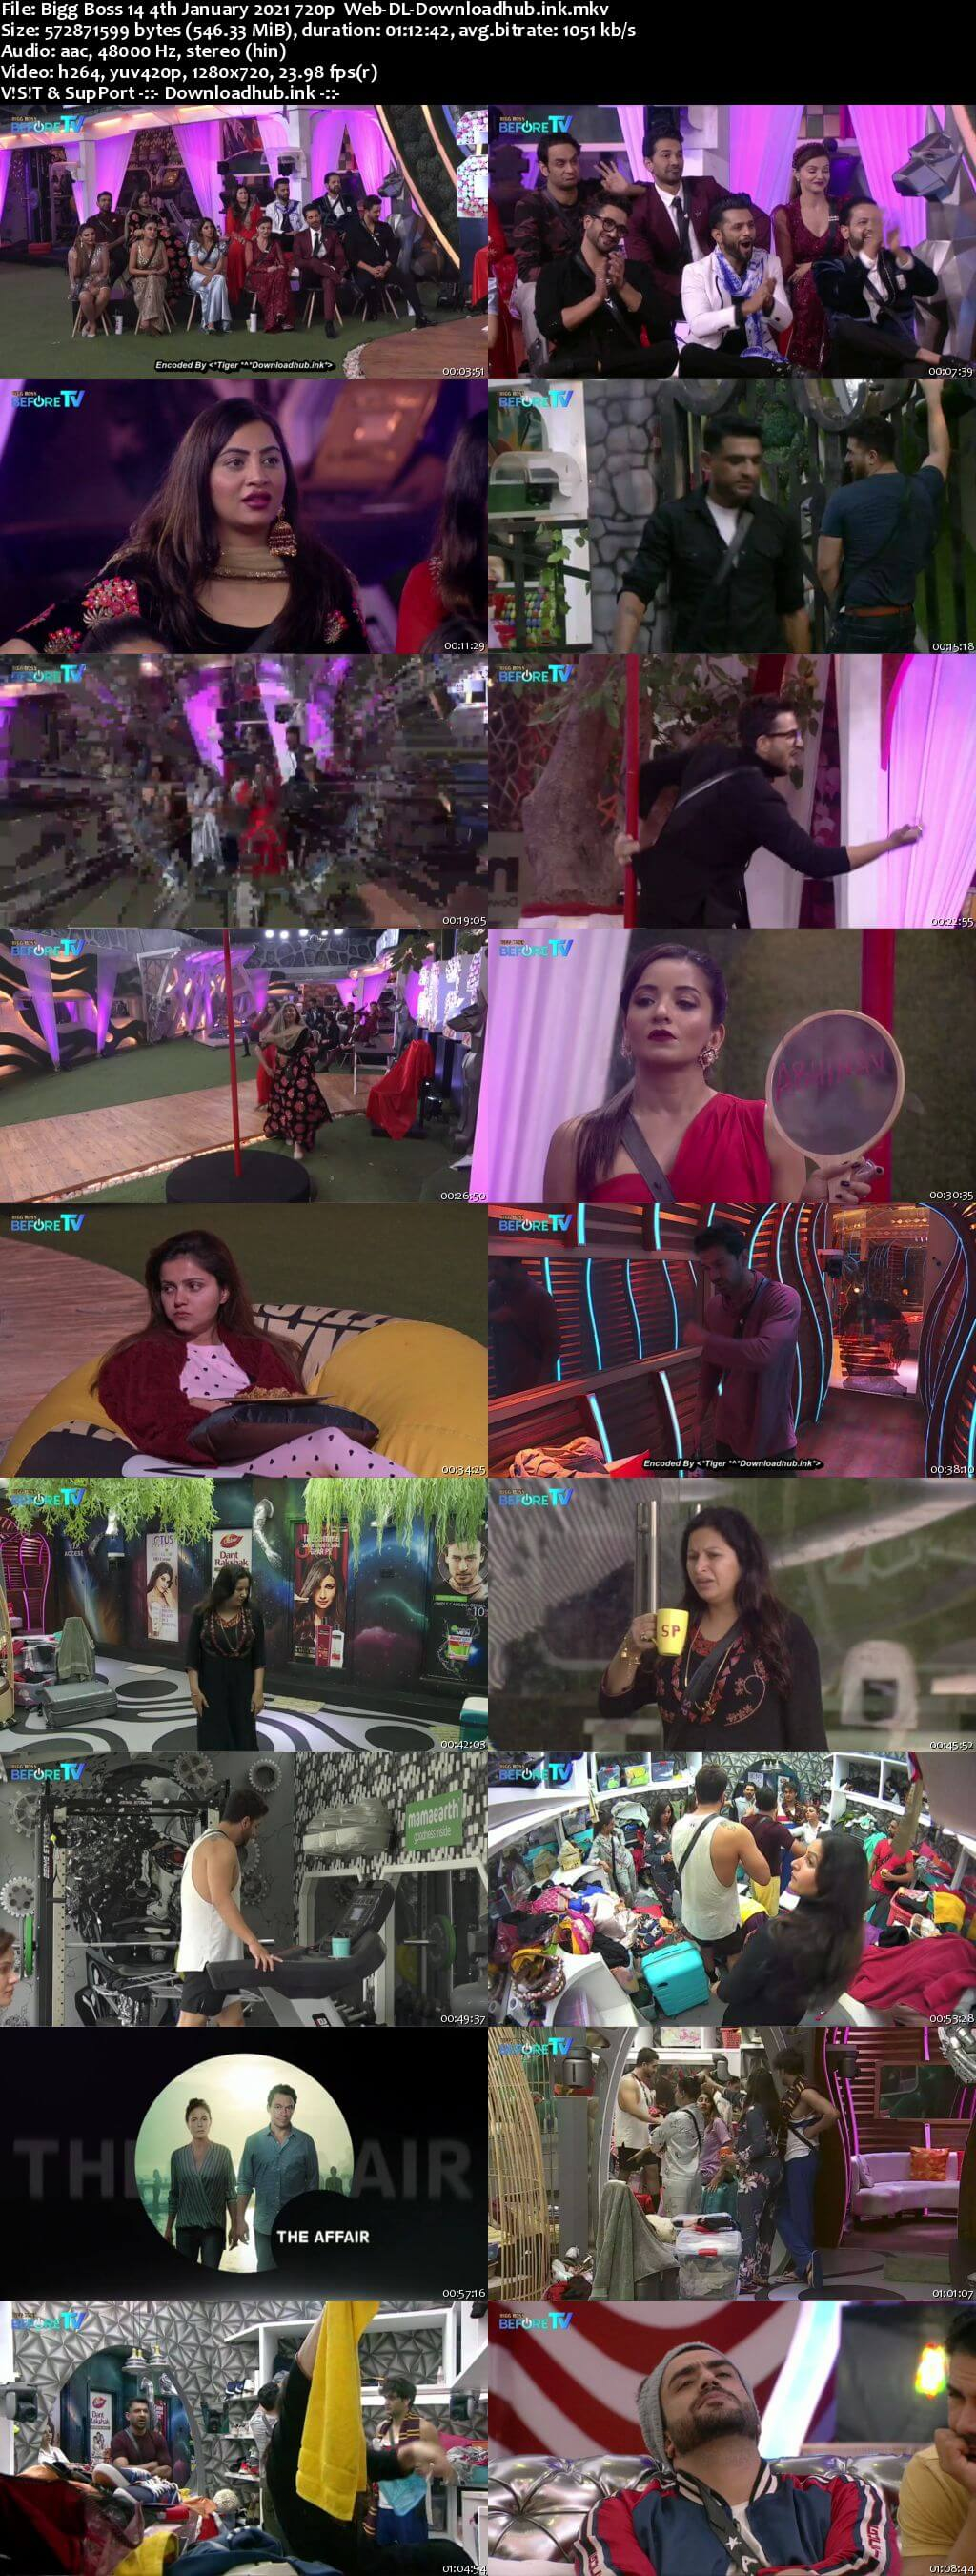 Bigg Boss 14 4th January 2021 Episode 93 720p 480p Web-DL